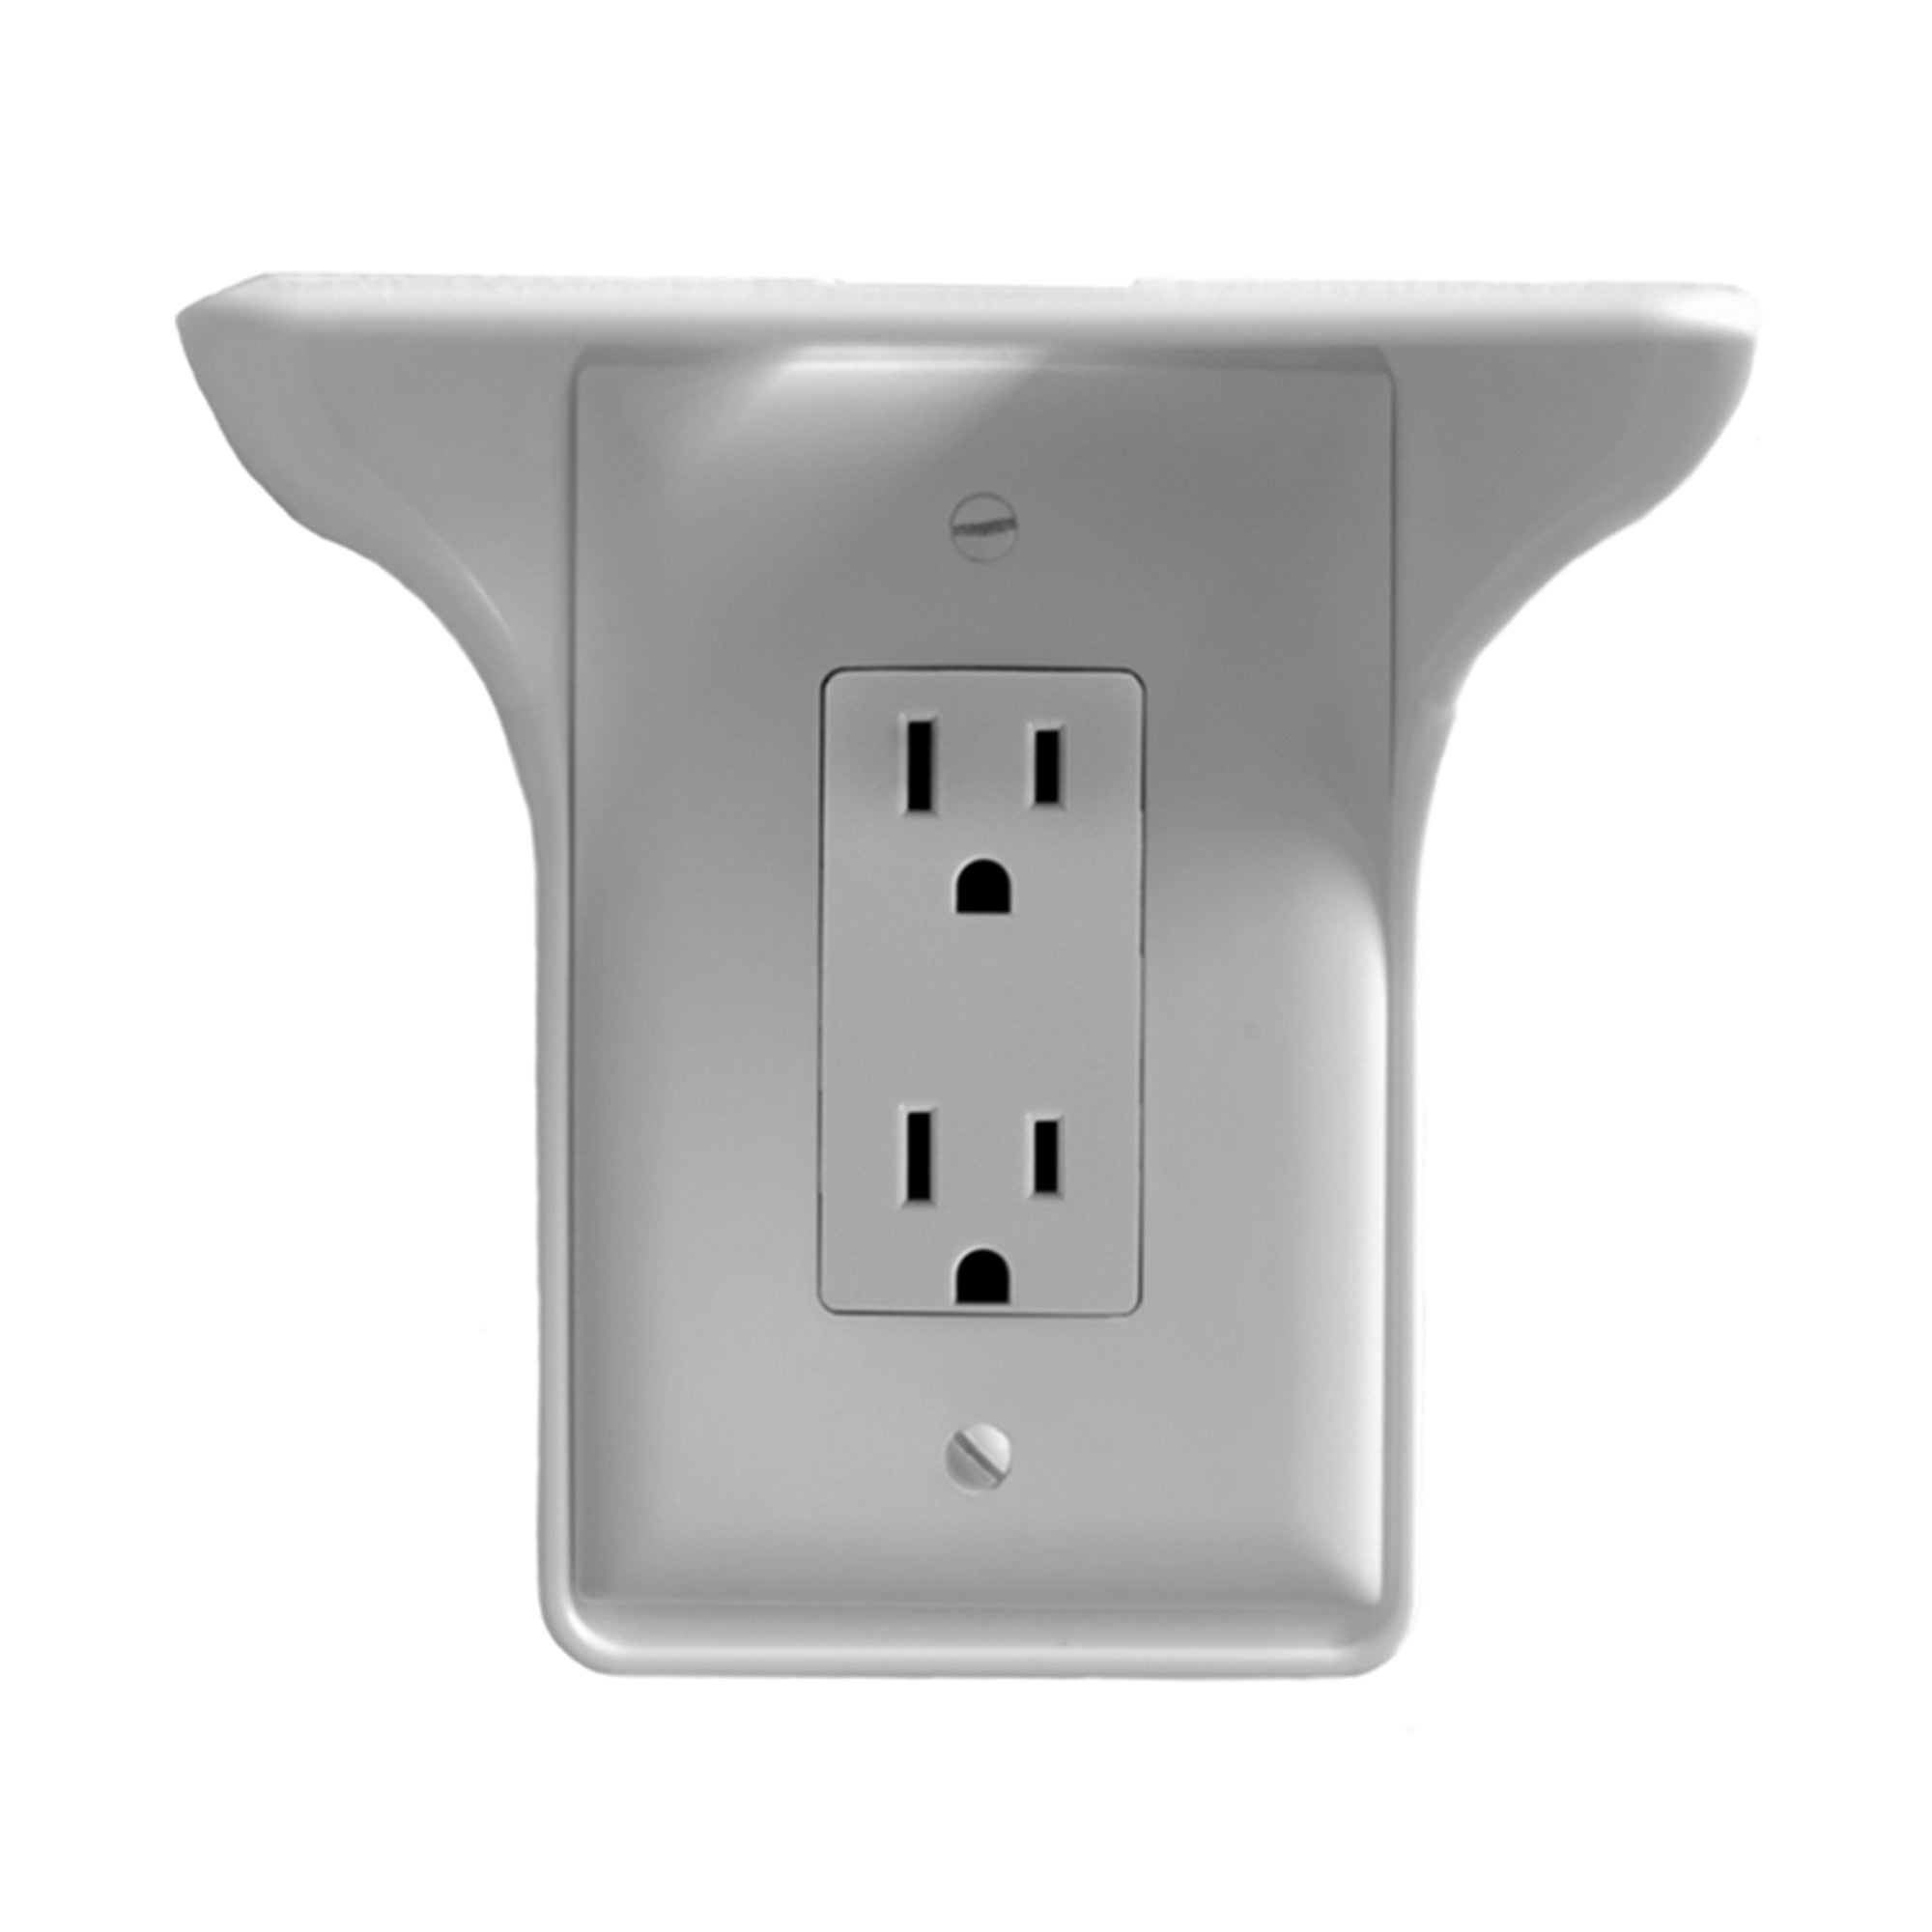 Outlet Google Patents On Wiring A Light Switch Off Gfci Storage And Organization Power Perch